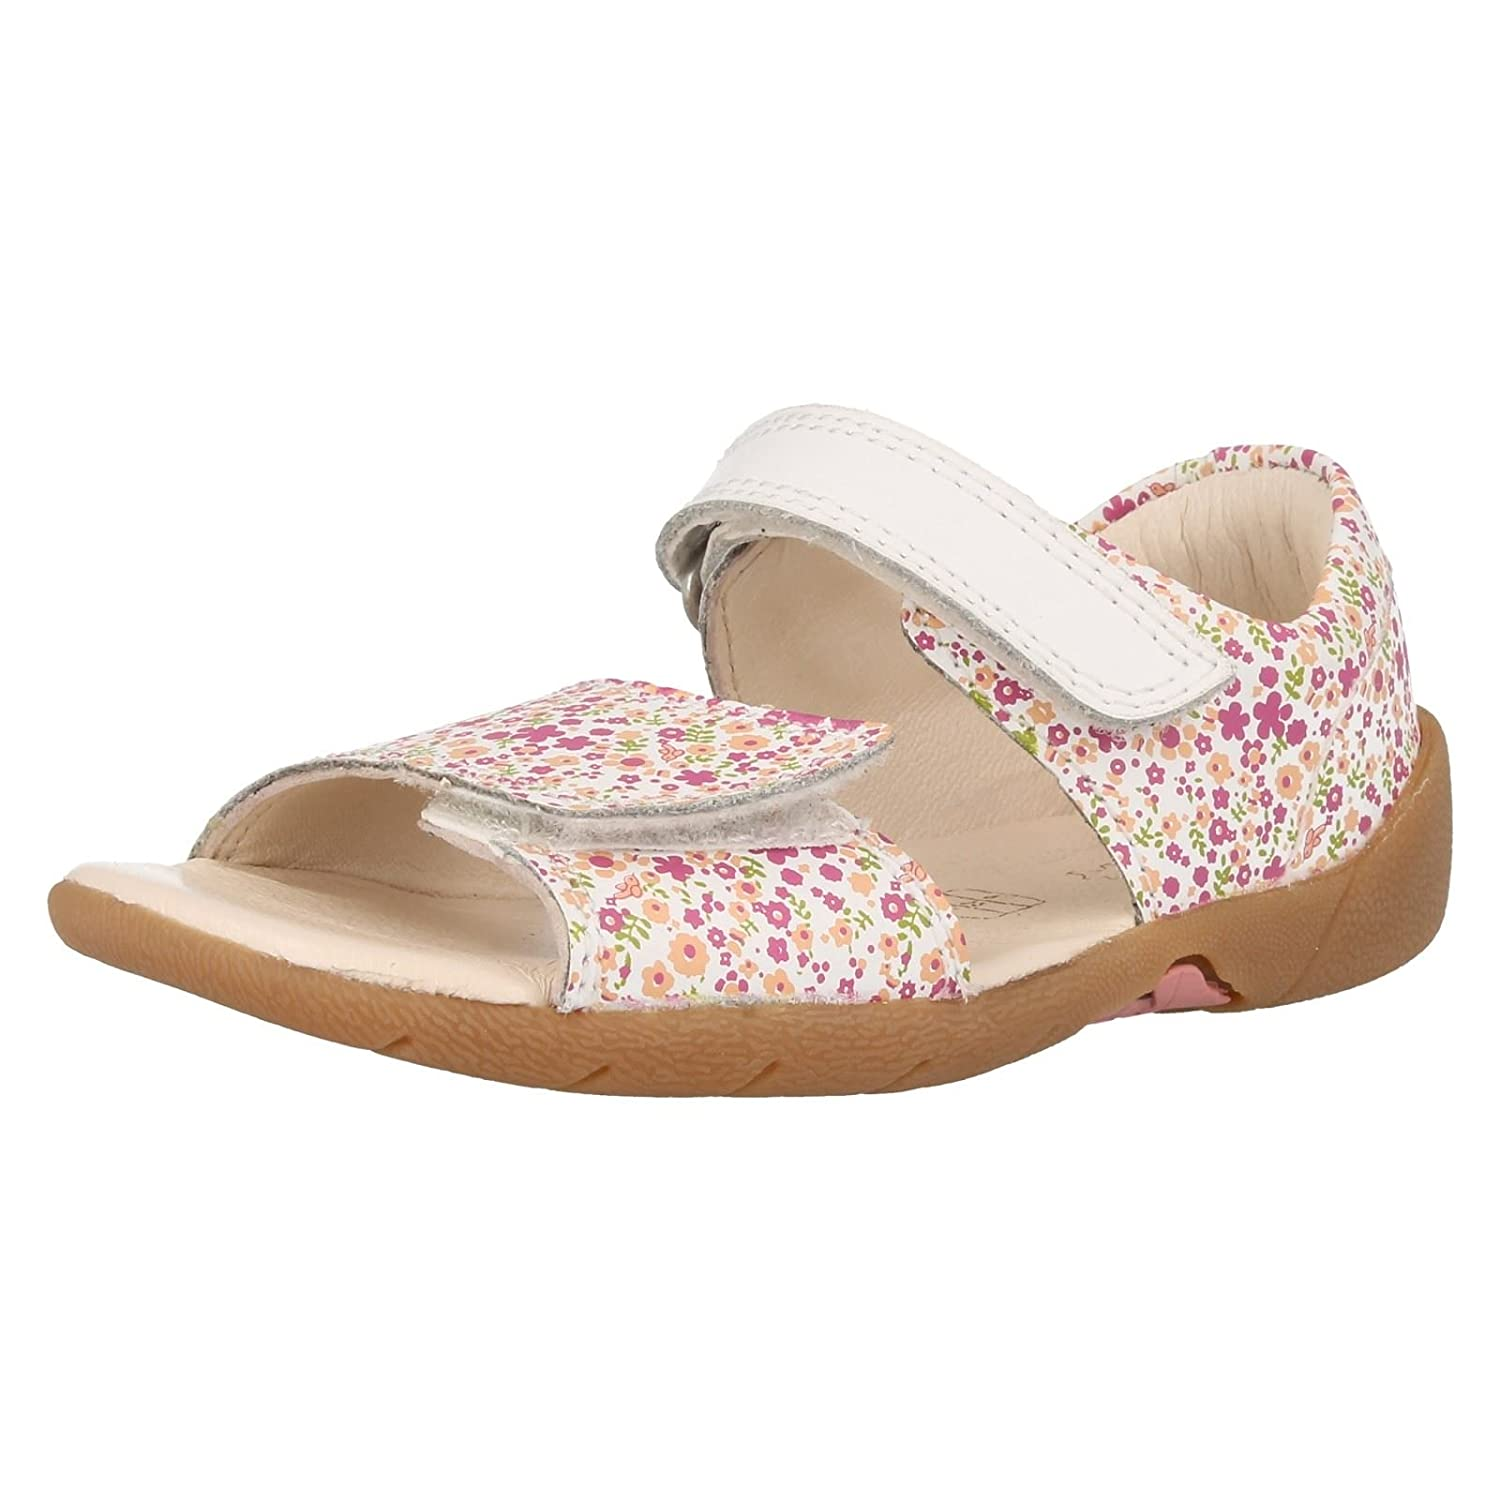 2459f61f56c Clarks Girl s First Walking Shoes  Amazon.in  Shoes   Handbags